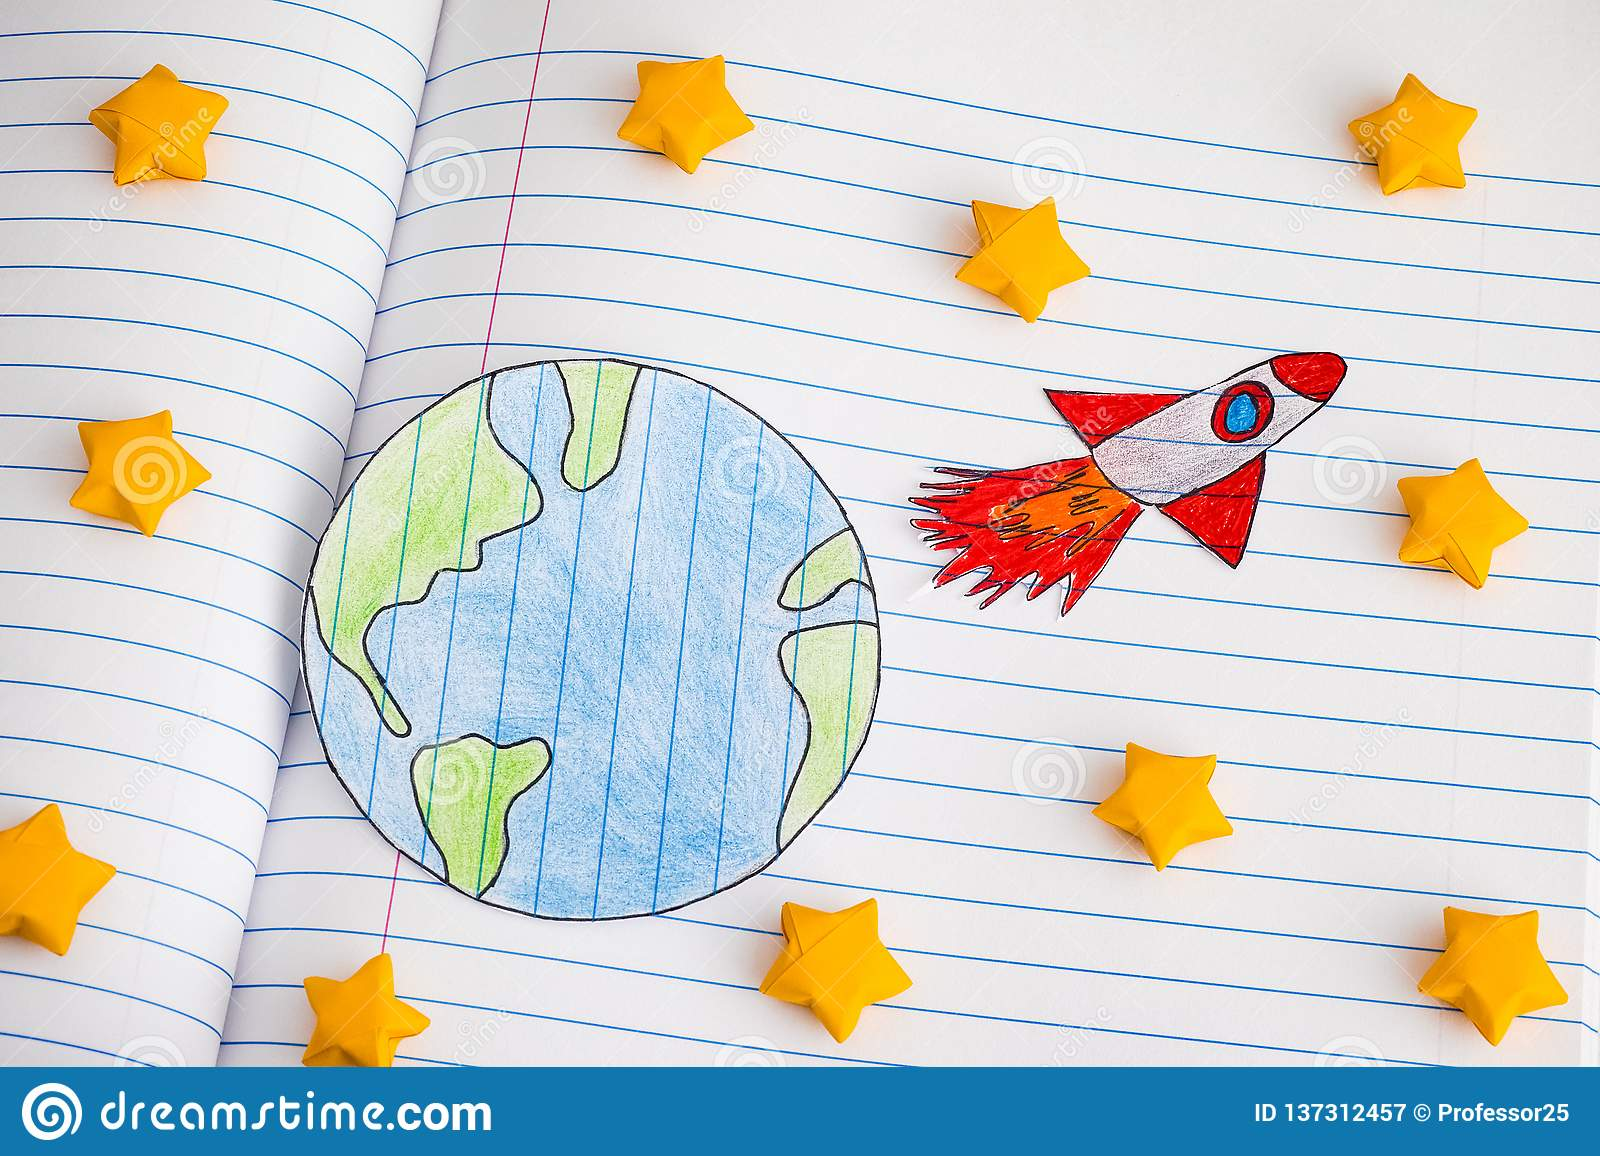 Space Rocket Blasting Off For New Ideas Through Yellow Origami Stars